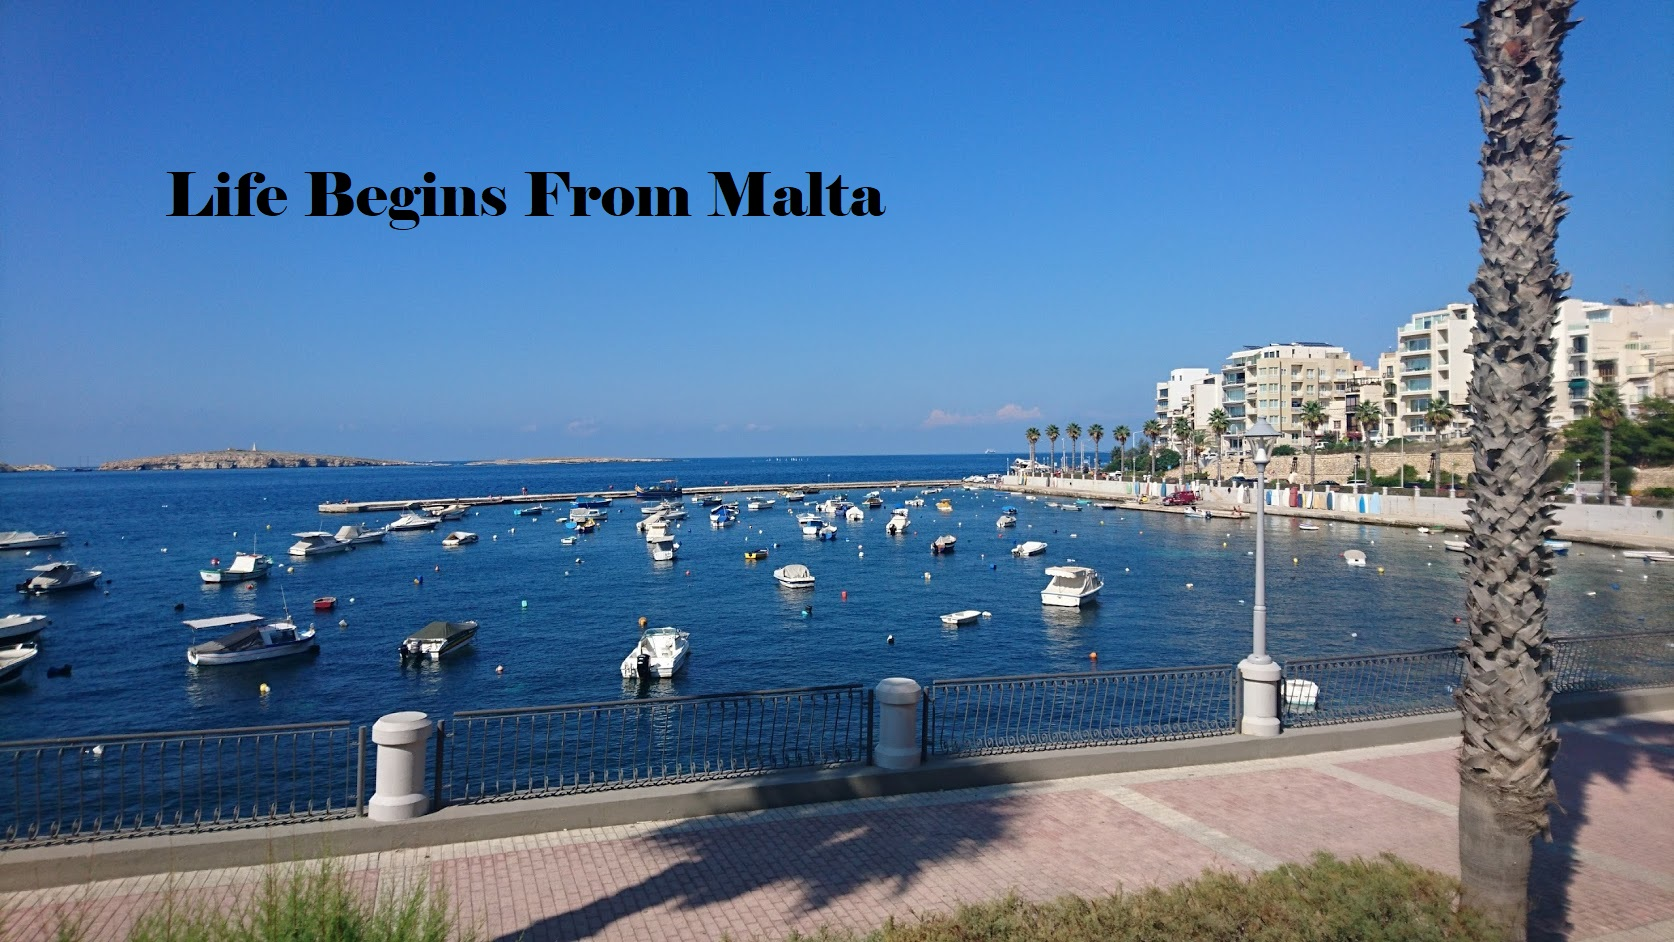 Life Begins From Malta